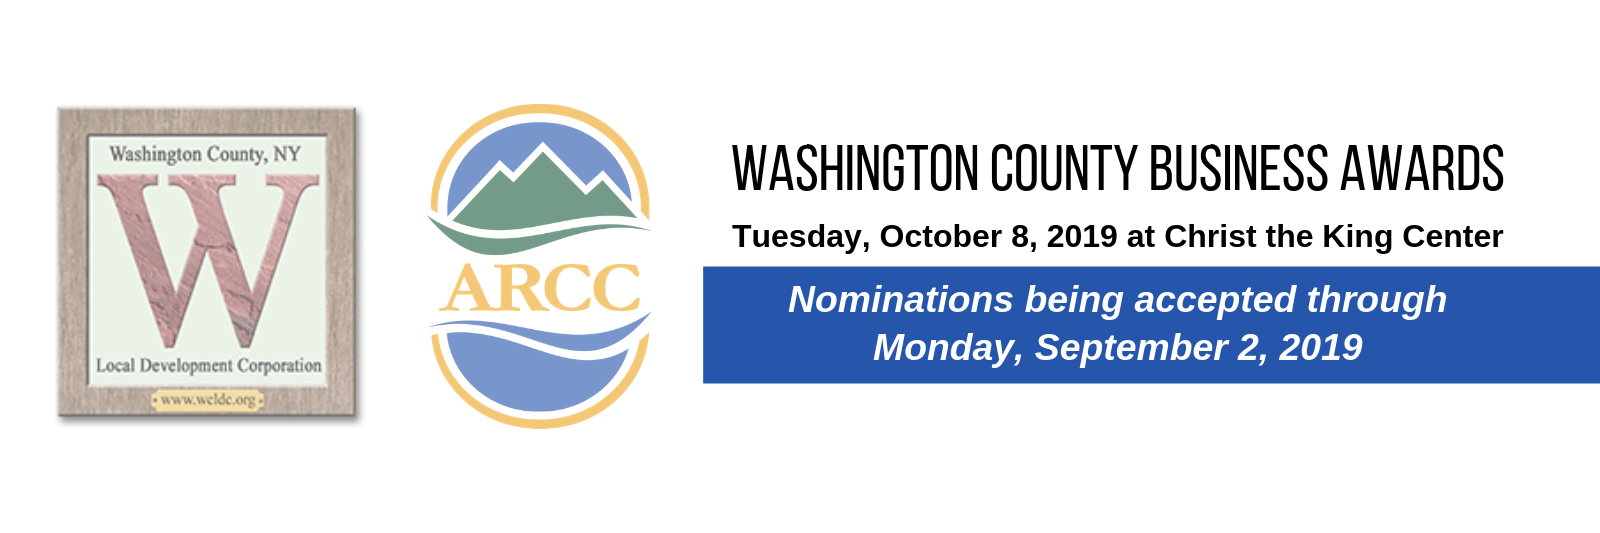 Washington-County-Business-Awards-Website-Banner.png